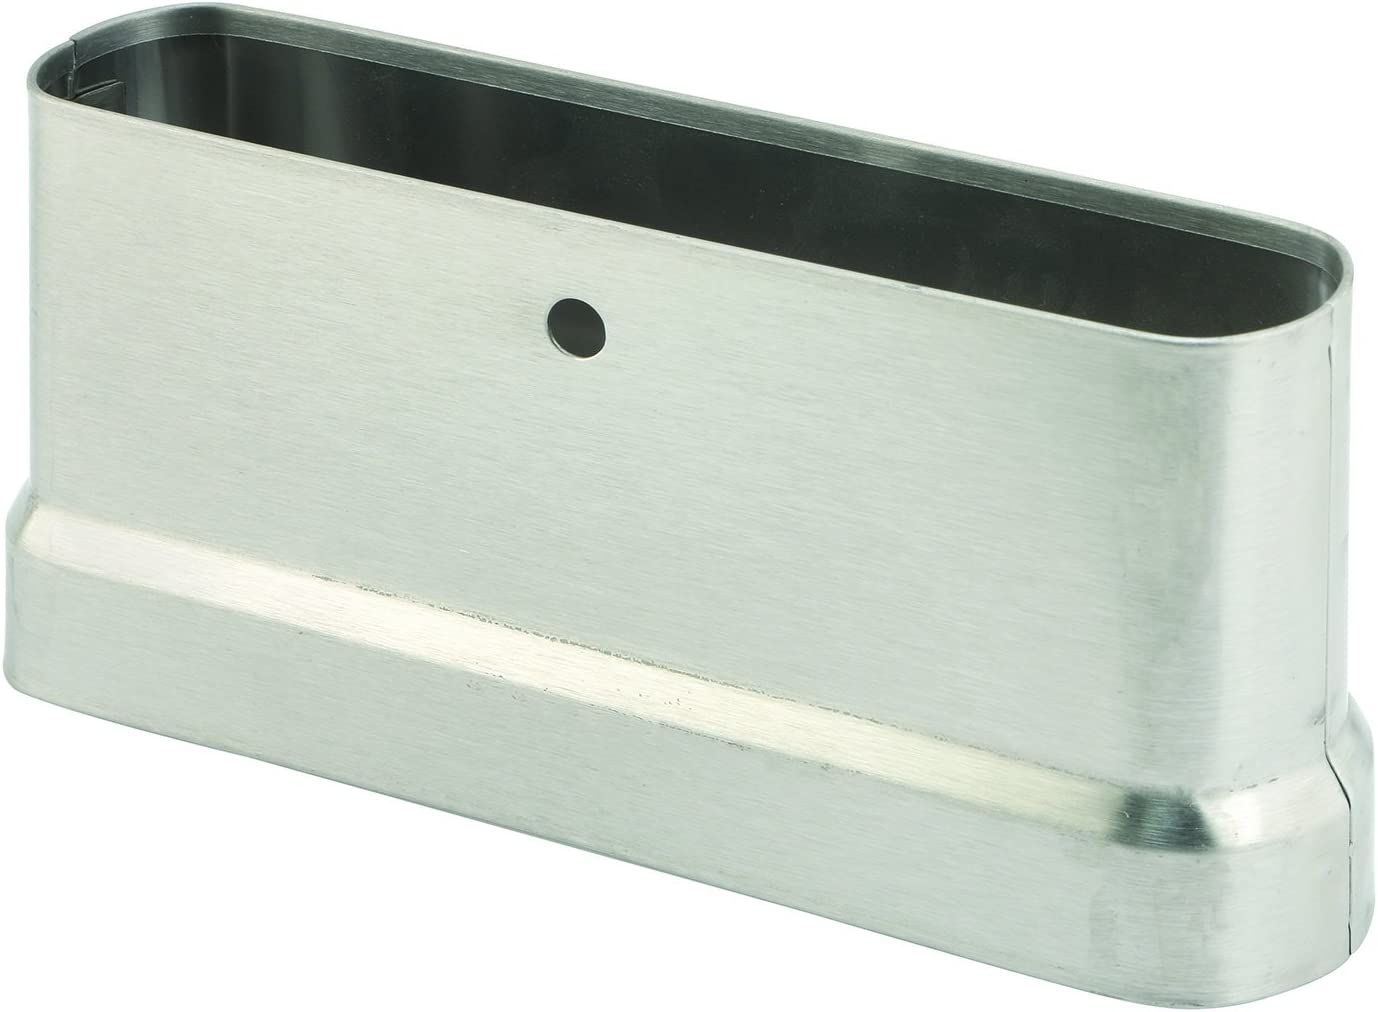 Chrome 1-Inch Prime-Line Products 650-6446 Extra Long Urinal Bracket